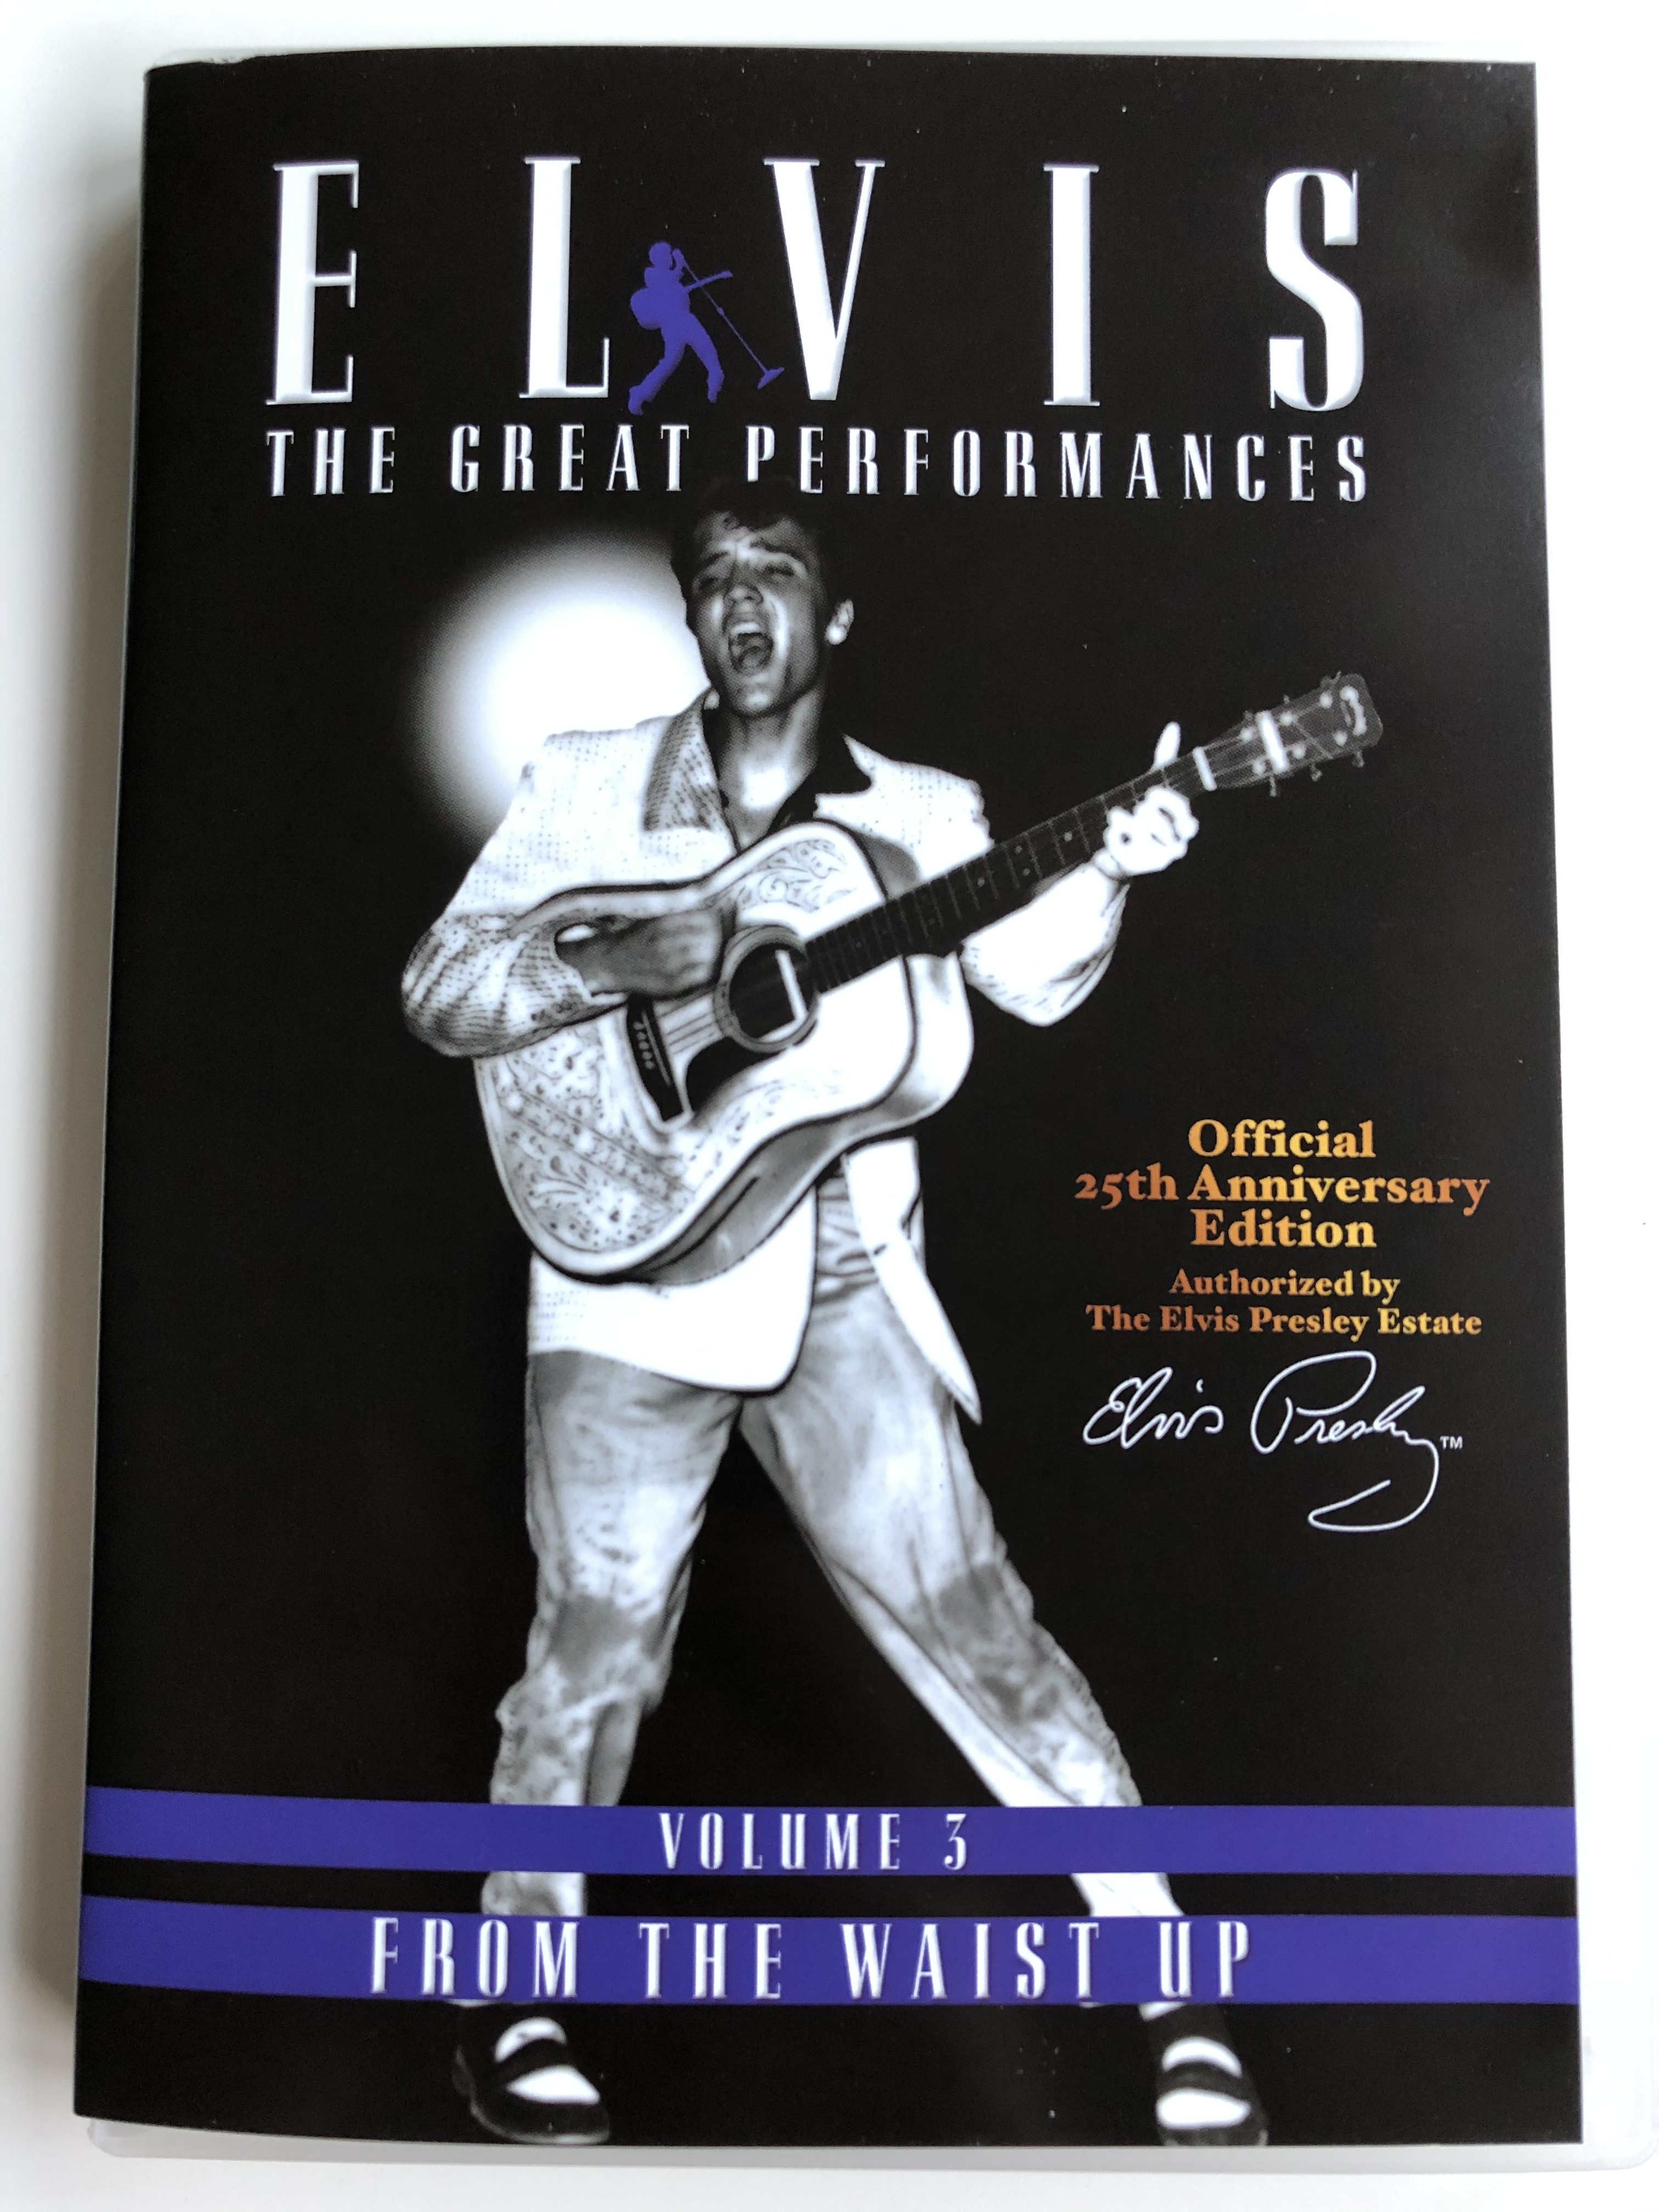 elvis-the-great-performances-dvd-volume-3-from-the-waist-up-1.jpg